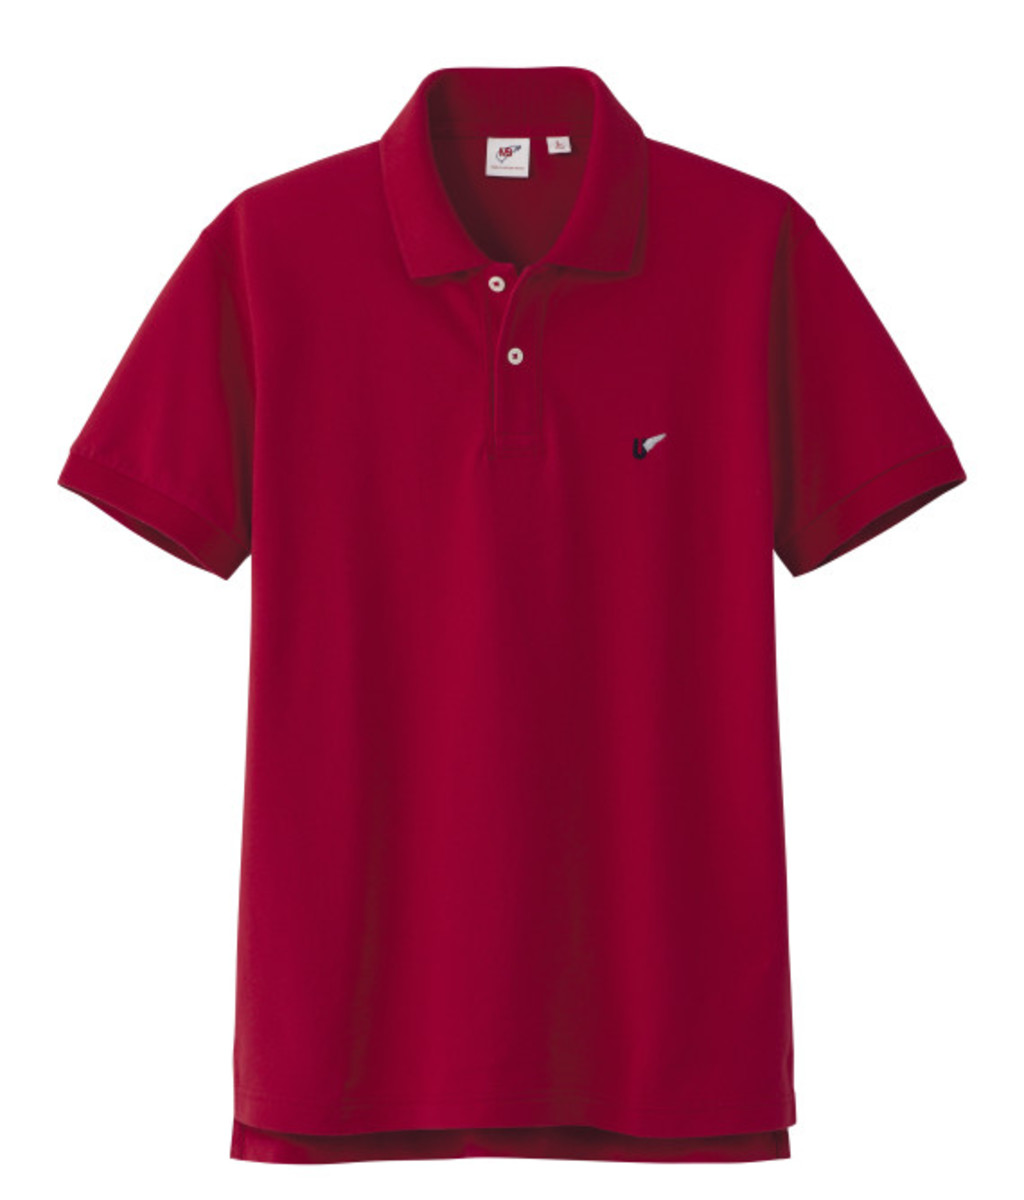 michael-bastian-x-uniqlo-mens-polo-shirt-collection-2013-28